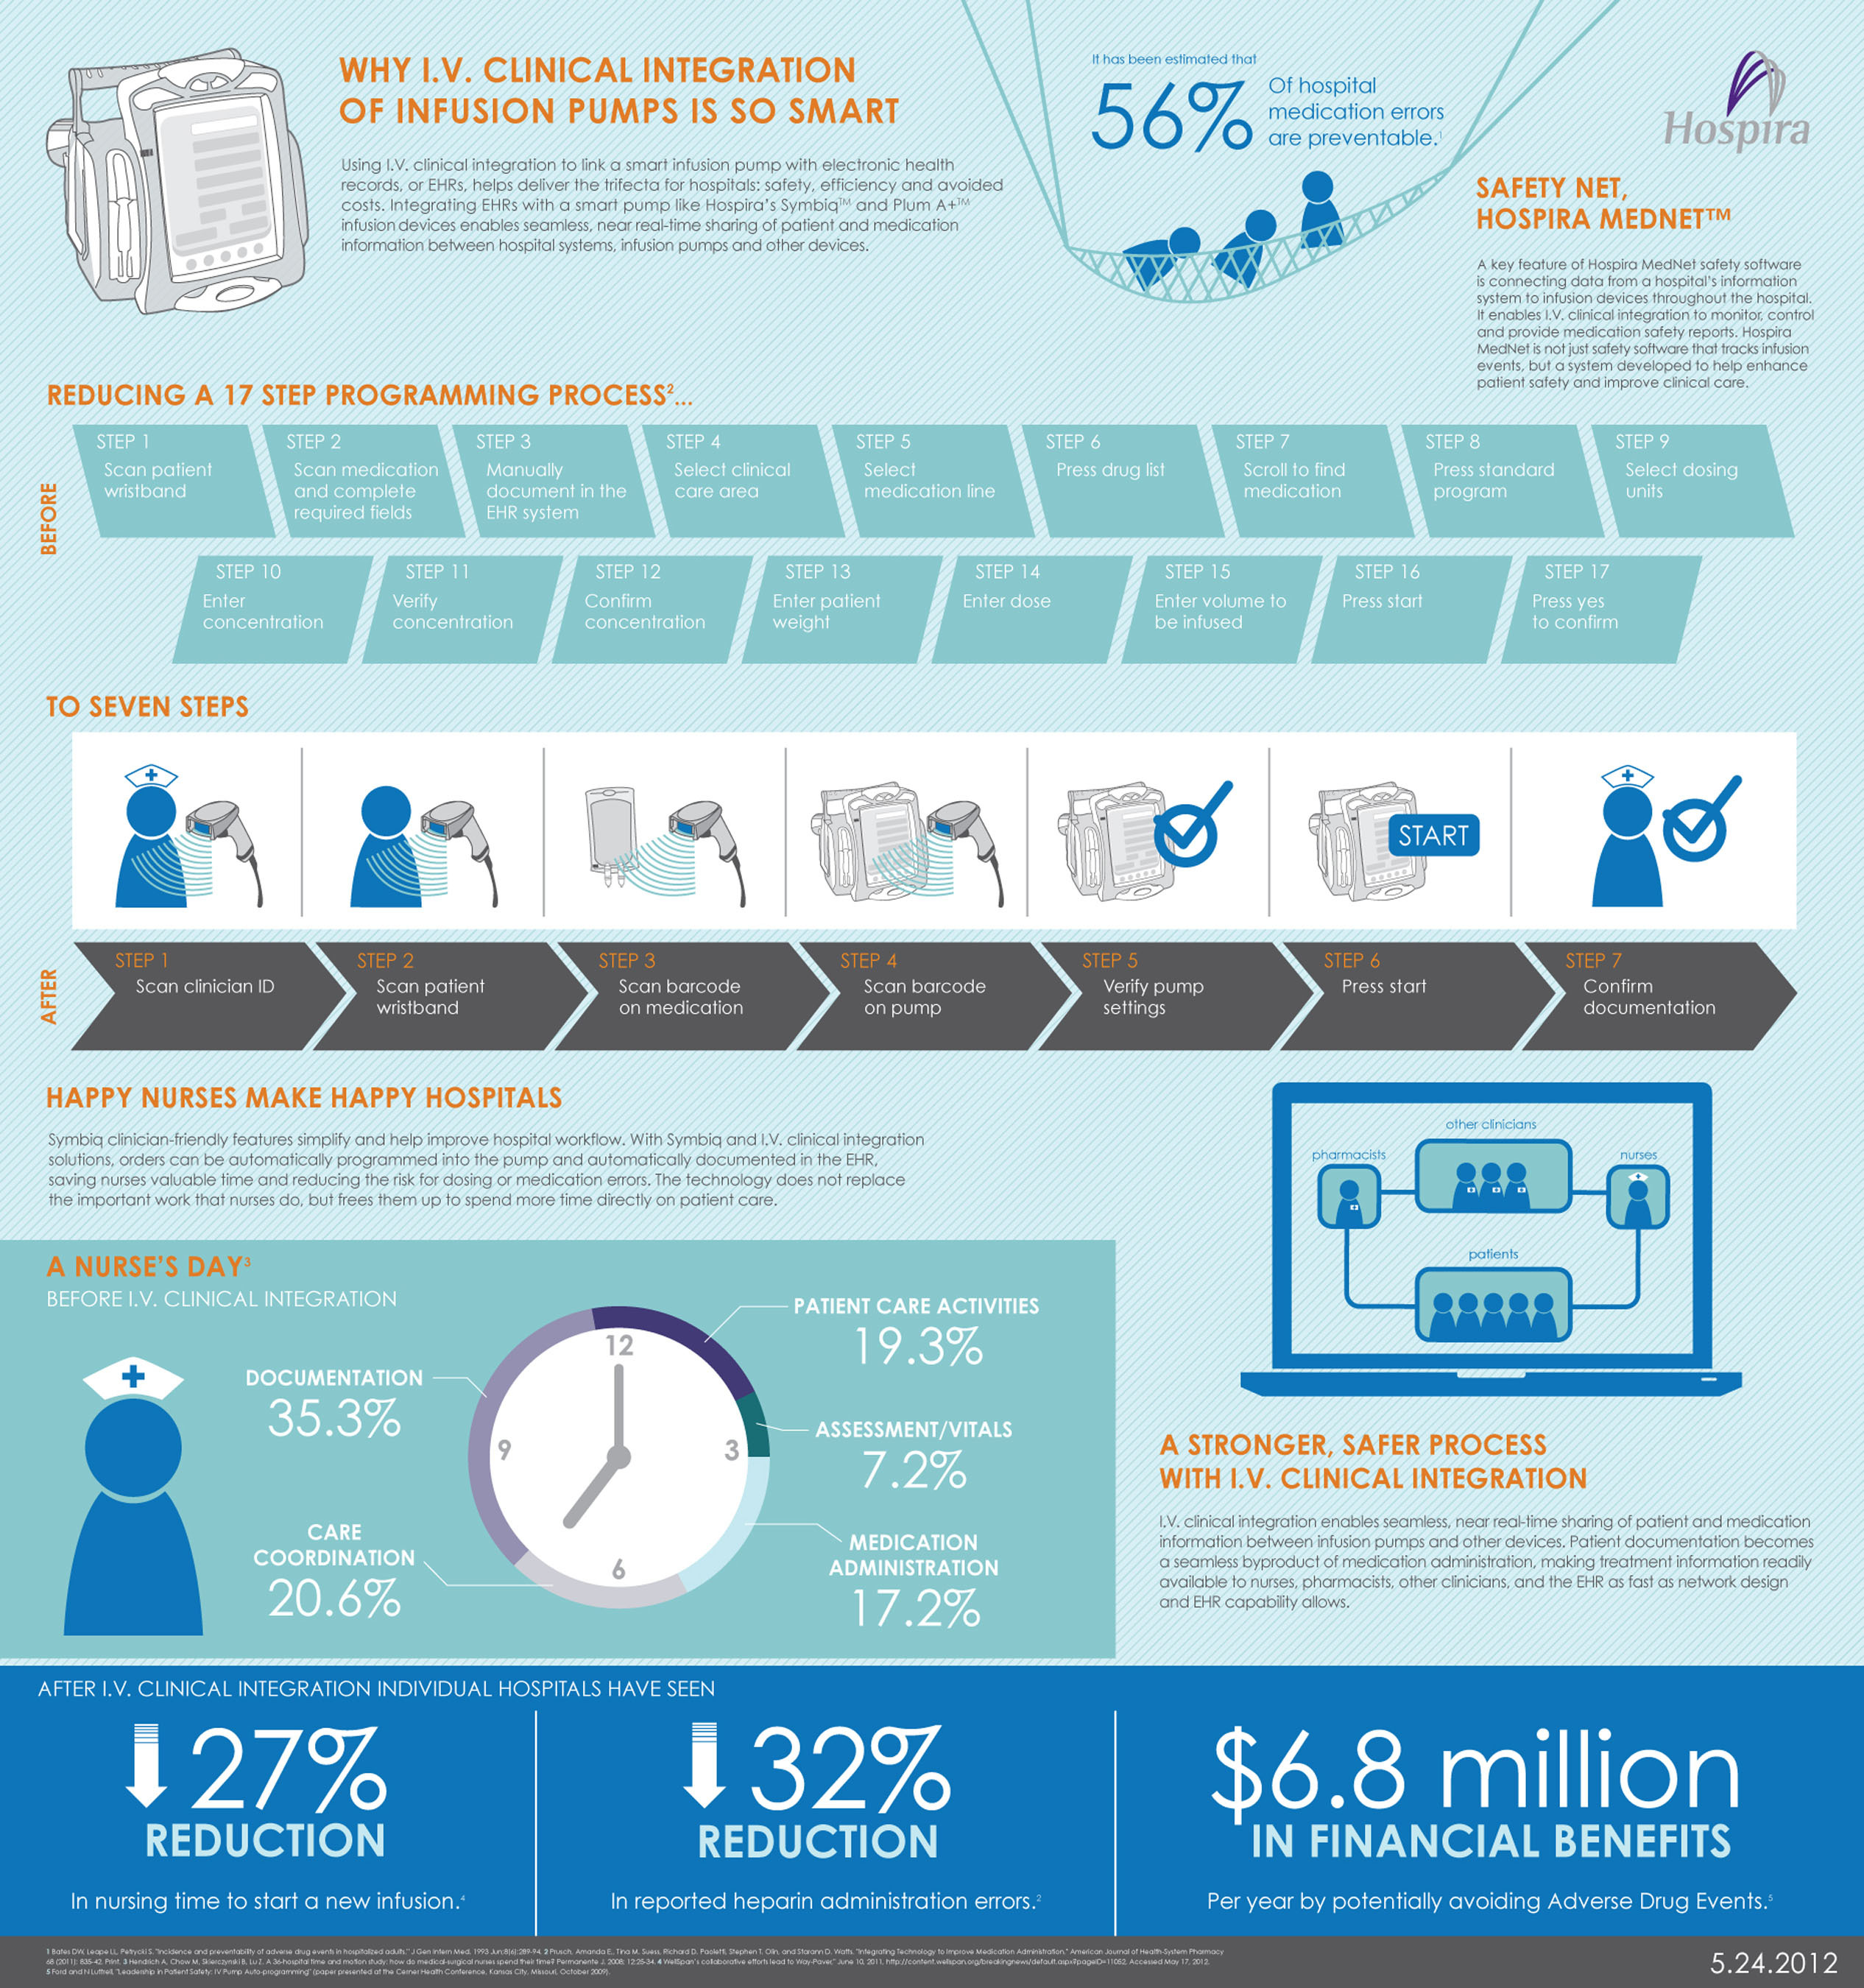 Infographic - Why I.V. Clinical Integration of Infusion Pumps is So Smart.  (PRNewsFoto/Hospira, Inc.)